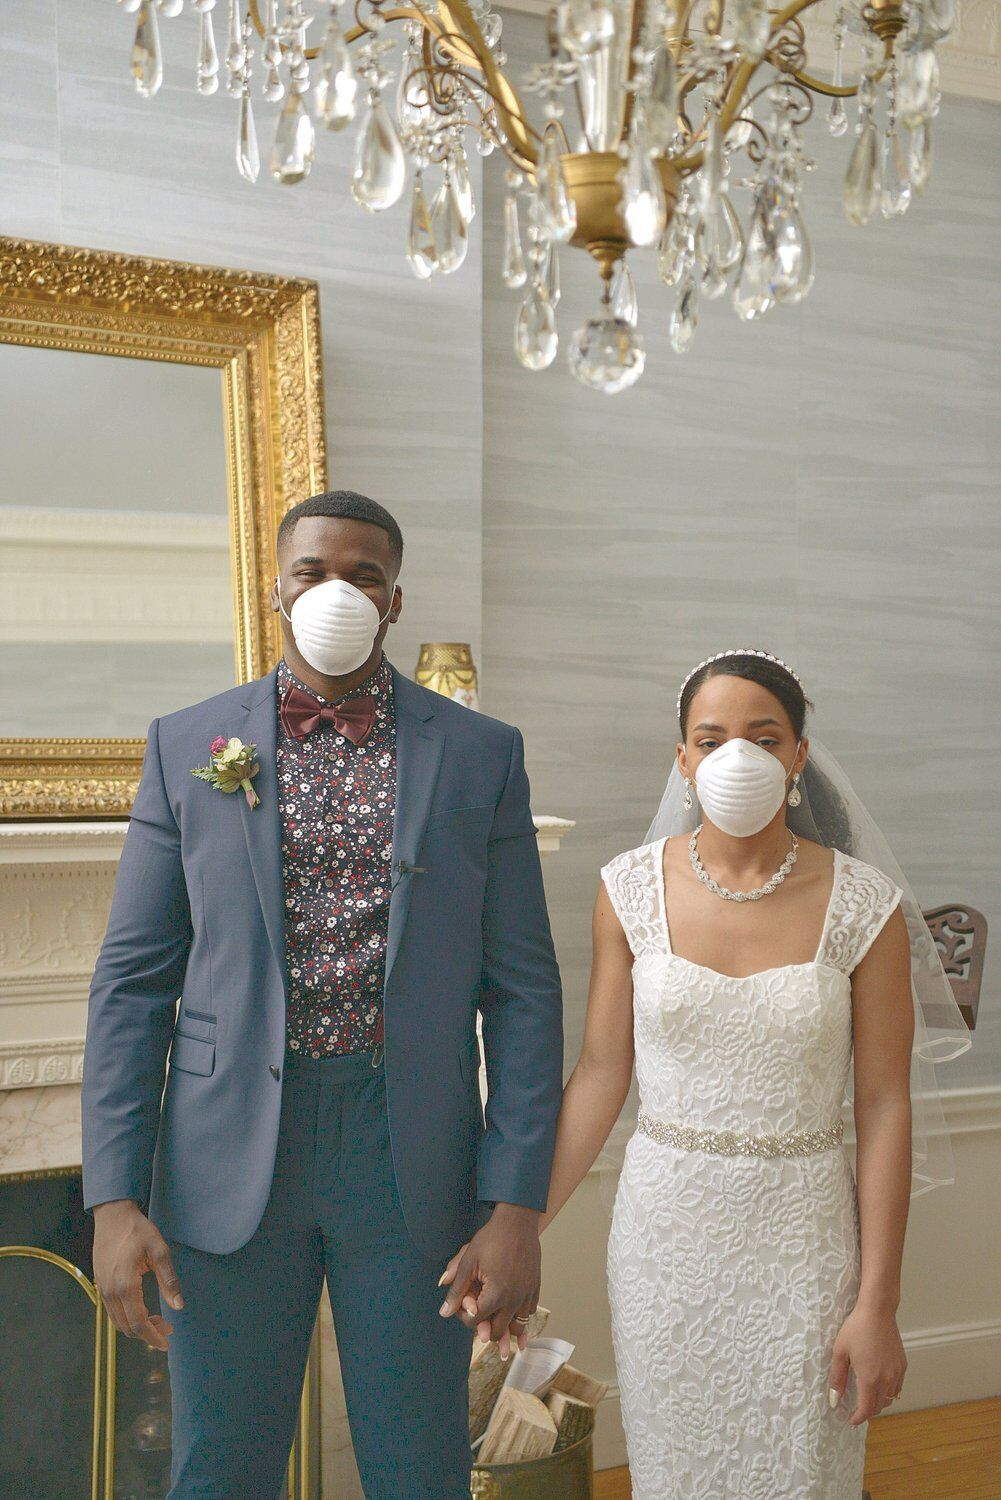 For some couples, pandemic brings with it the wedding bell blues